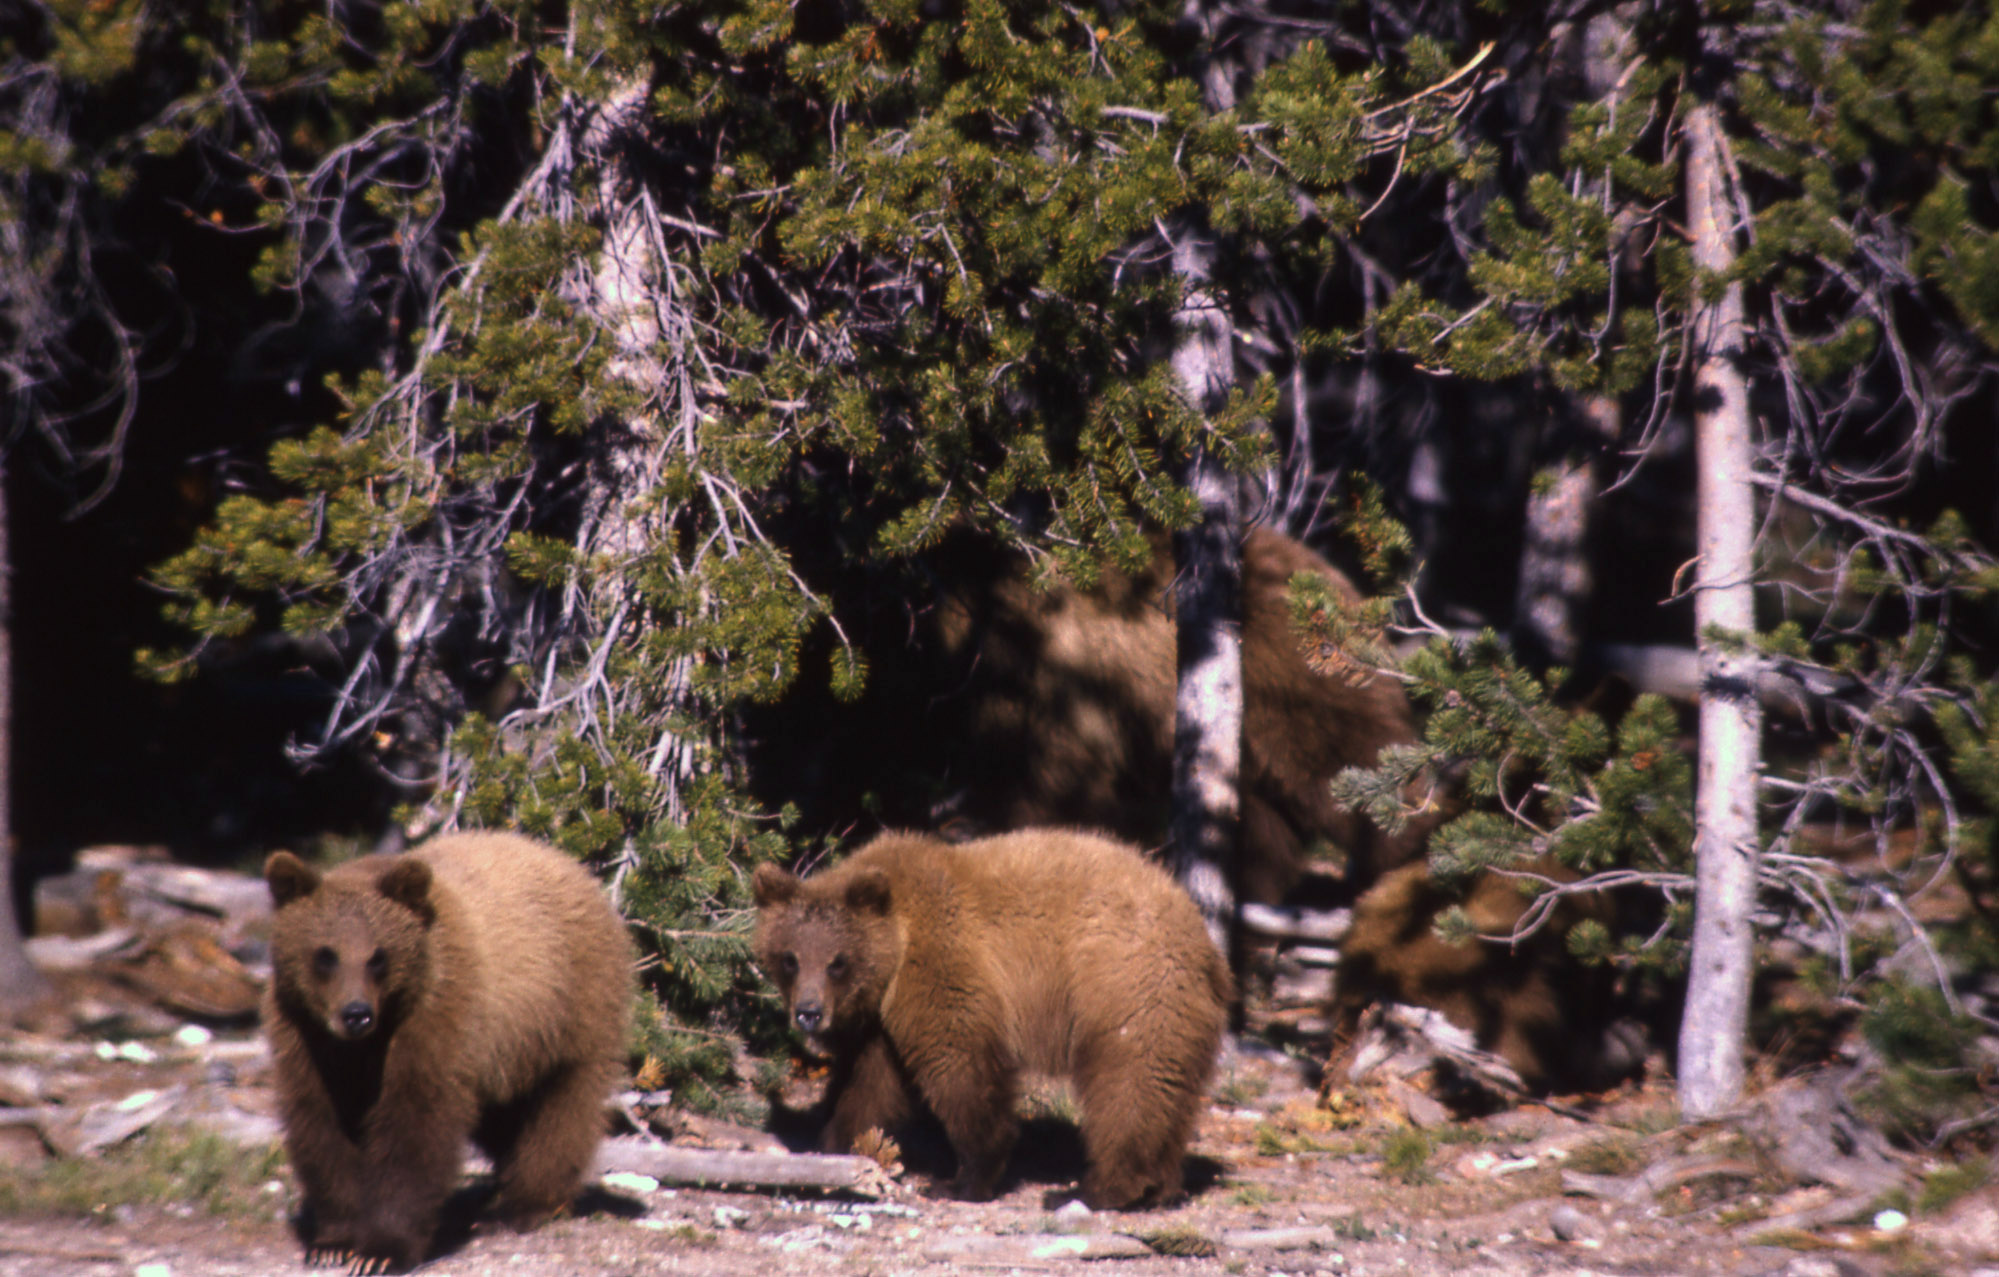 Tribes demand consultation on grizzly bears in Yellowstone